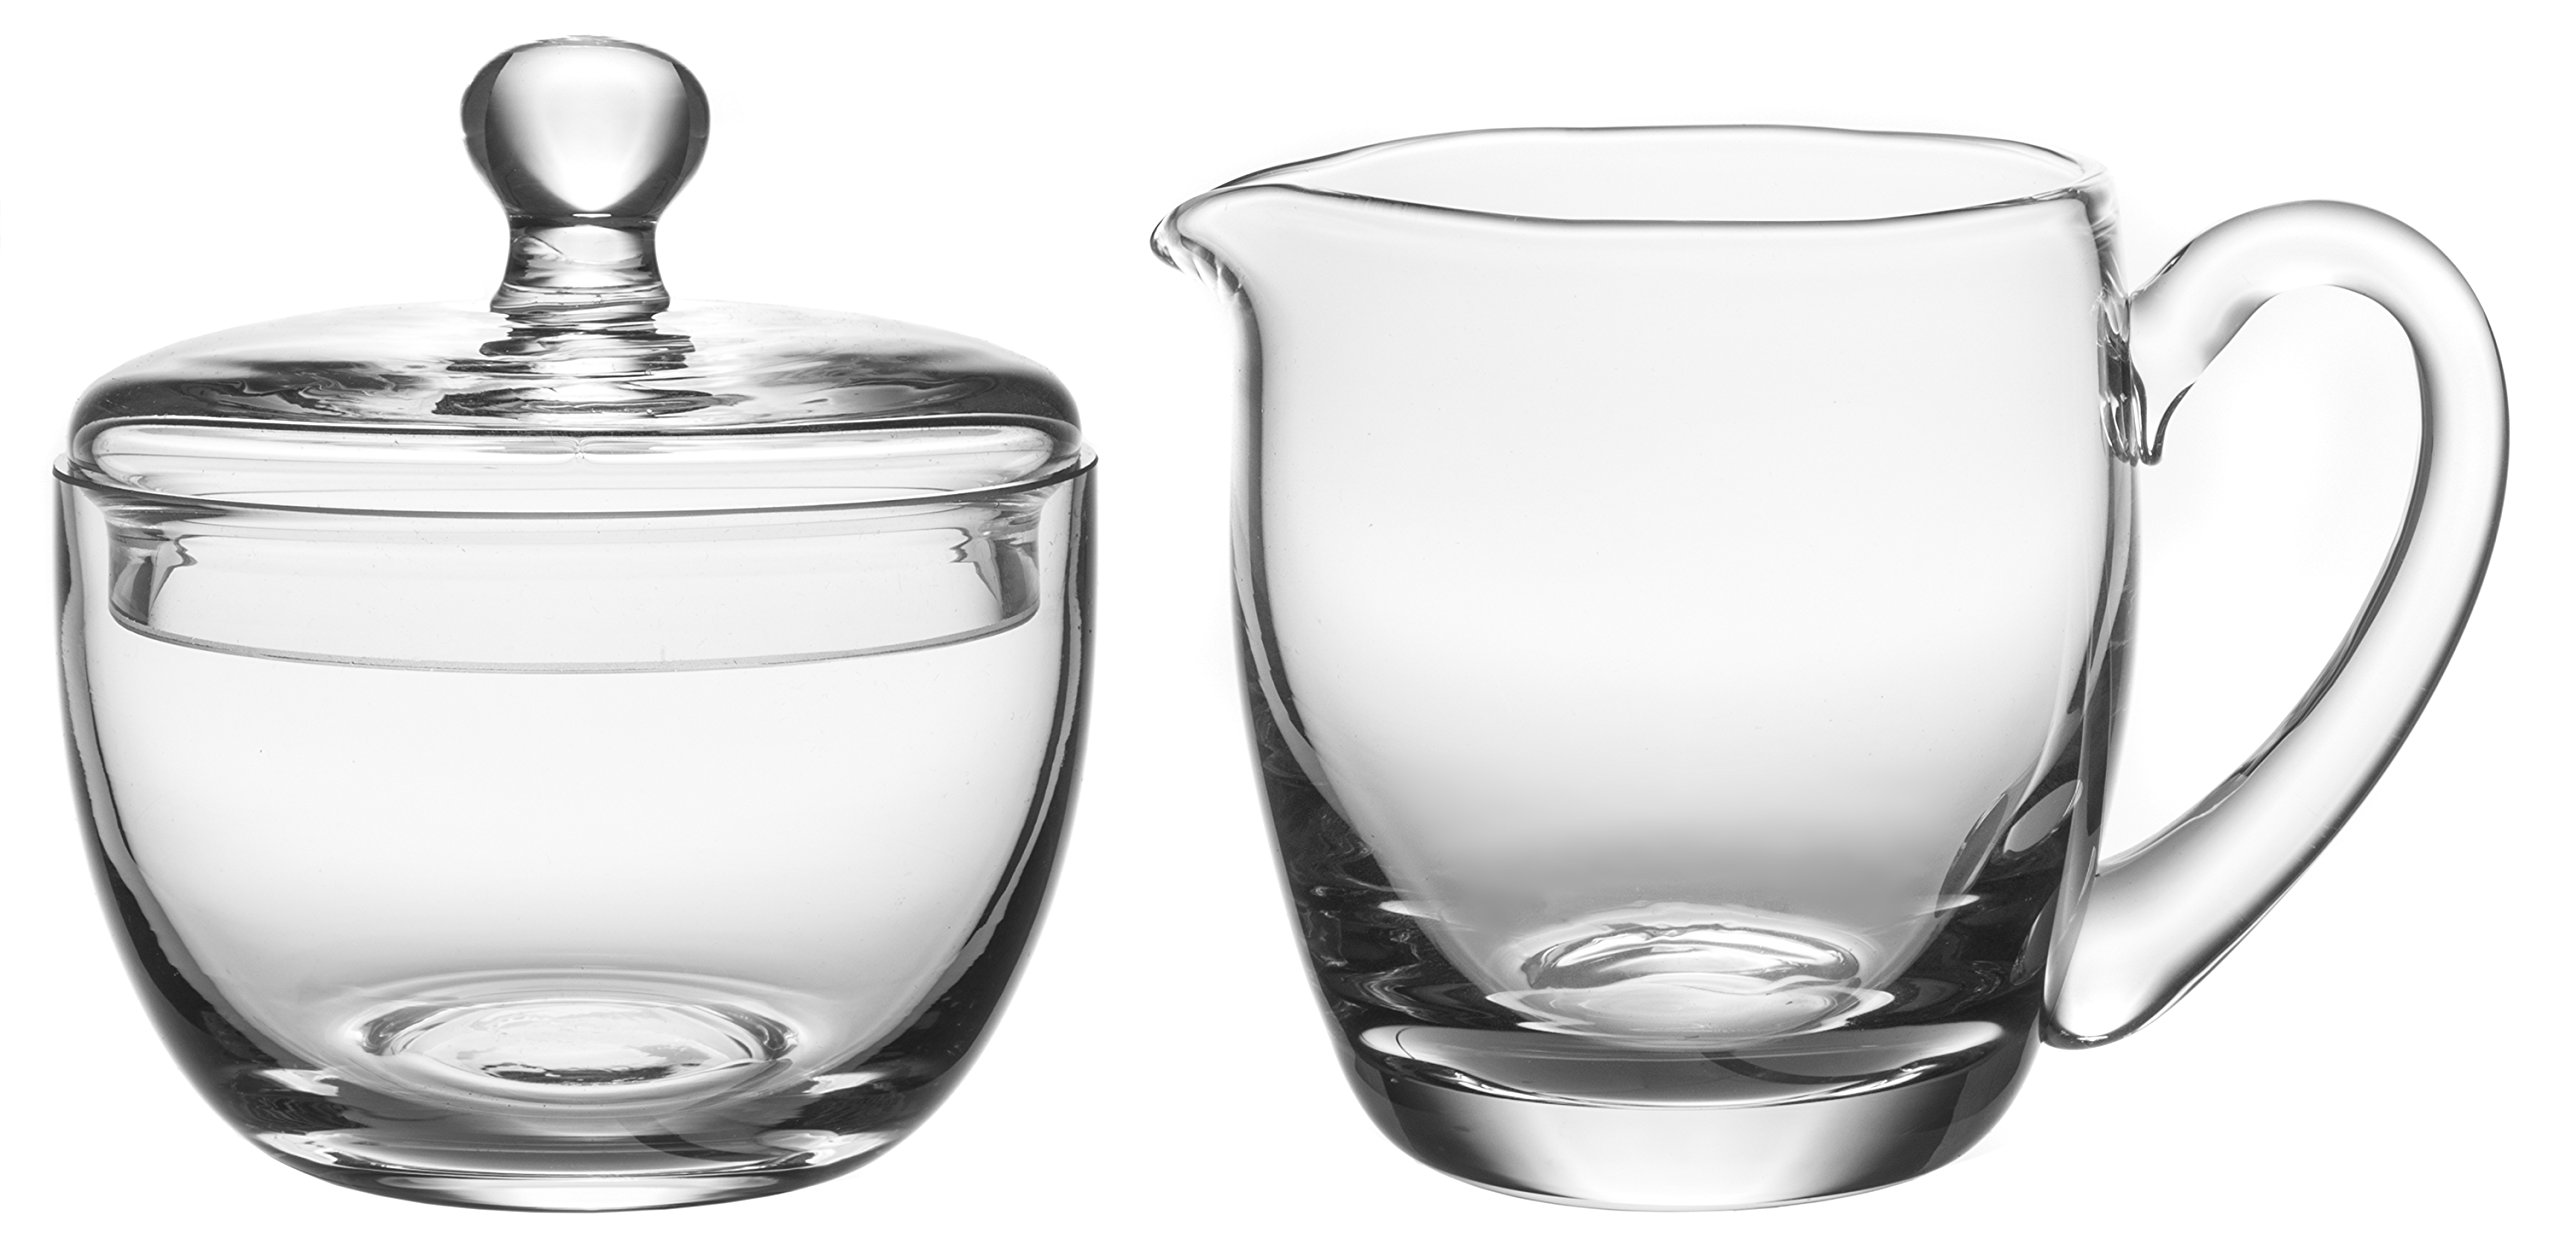 Hand Crafted Crystal Clear Glass Multipurpose Sugar Bowl & Creamer Set, 4-inch by Red Co.